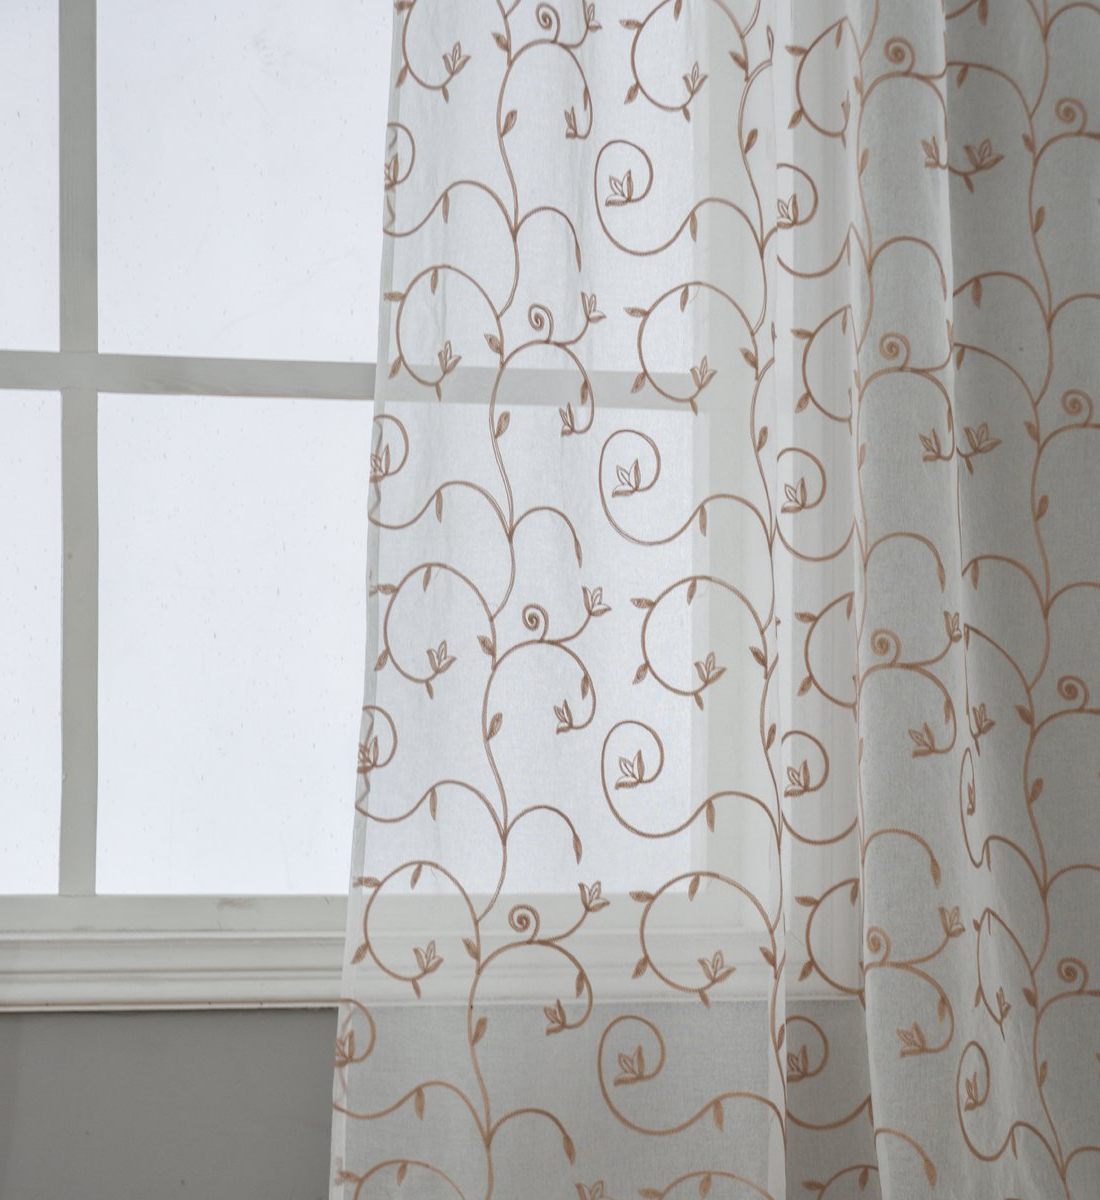 Current Overseas Leaf Swirl Embroidered Curtain Panel Pairs In Kotile Sheer Curtains For Living Room Curtain, Floral Embroidered 2 Panels Grommet Light Filtering Window Curtains For Sliding Glass Door Curtains, (View 14 of 21)